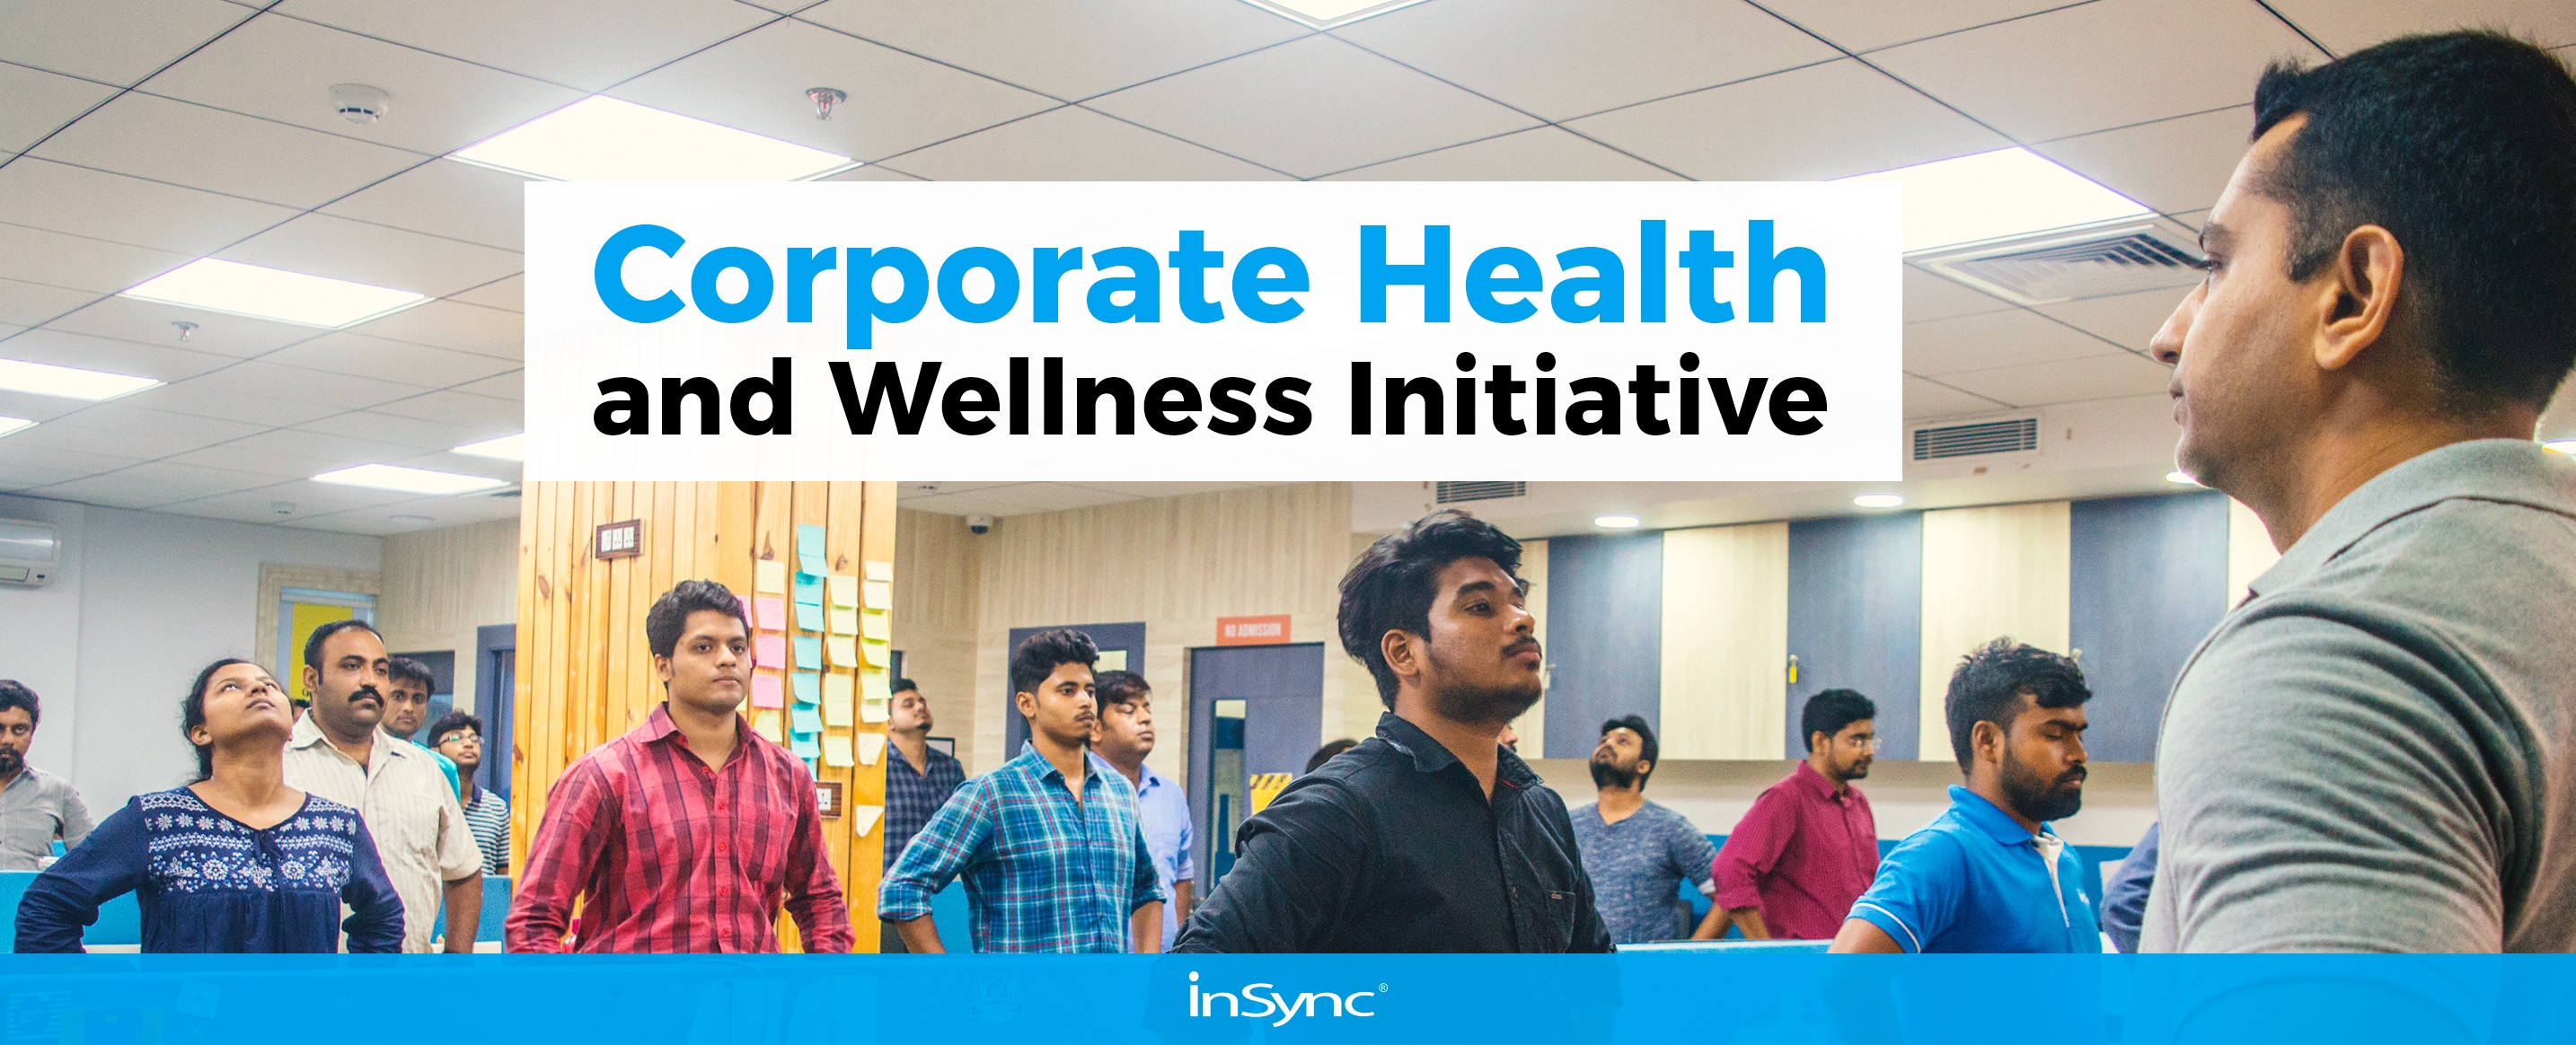 Corporate-Health-and-Wellness-Initiative-at-InSync